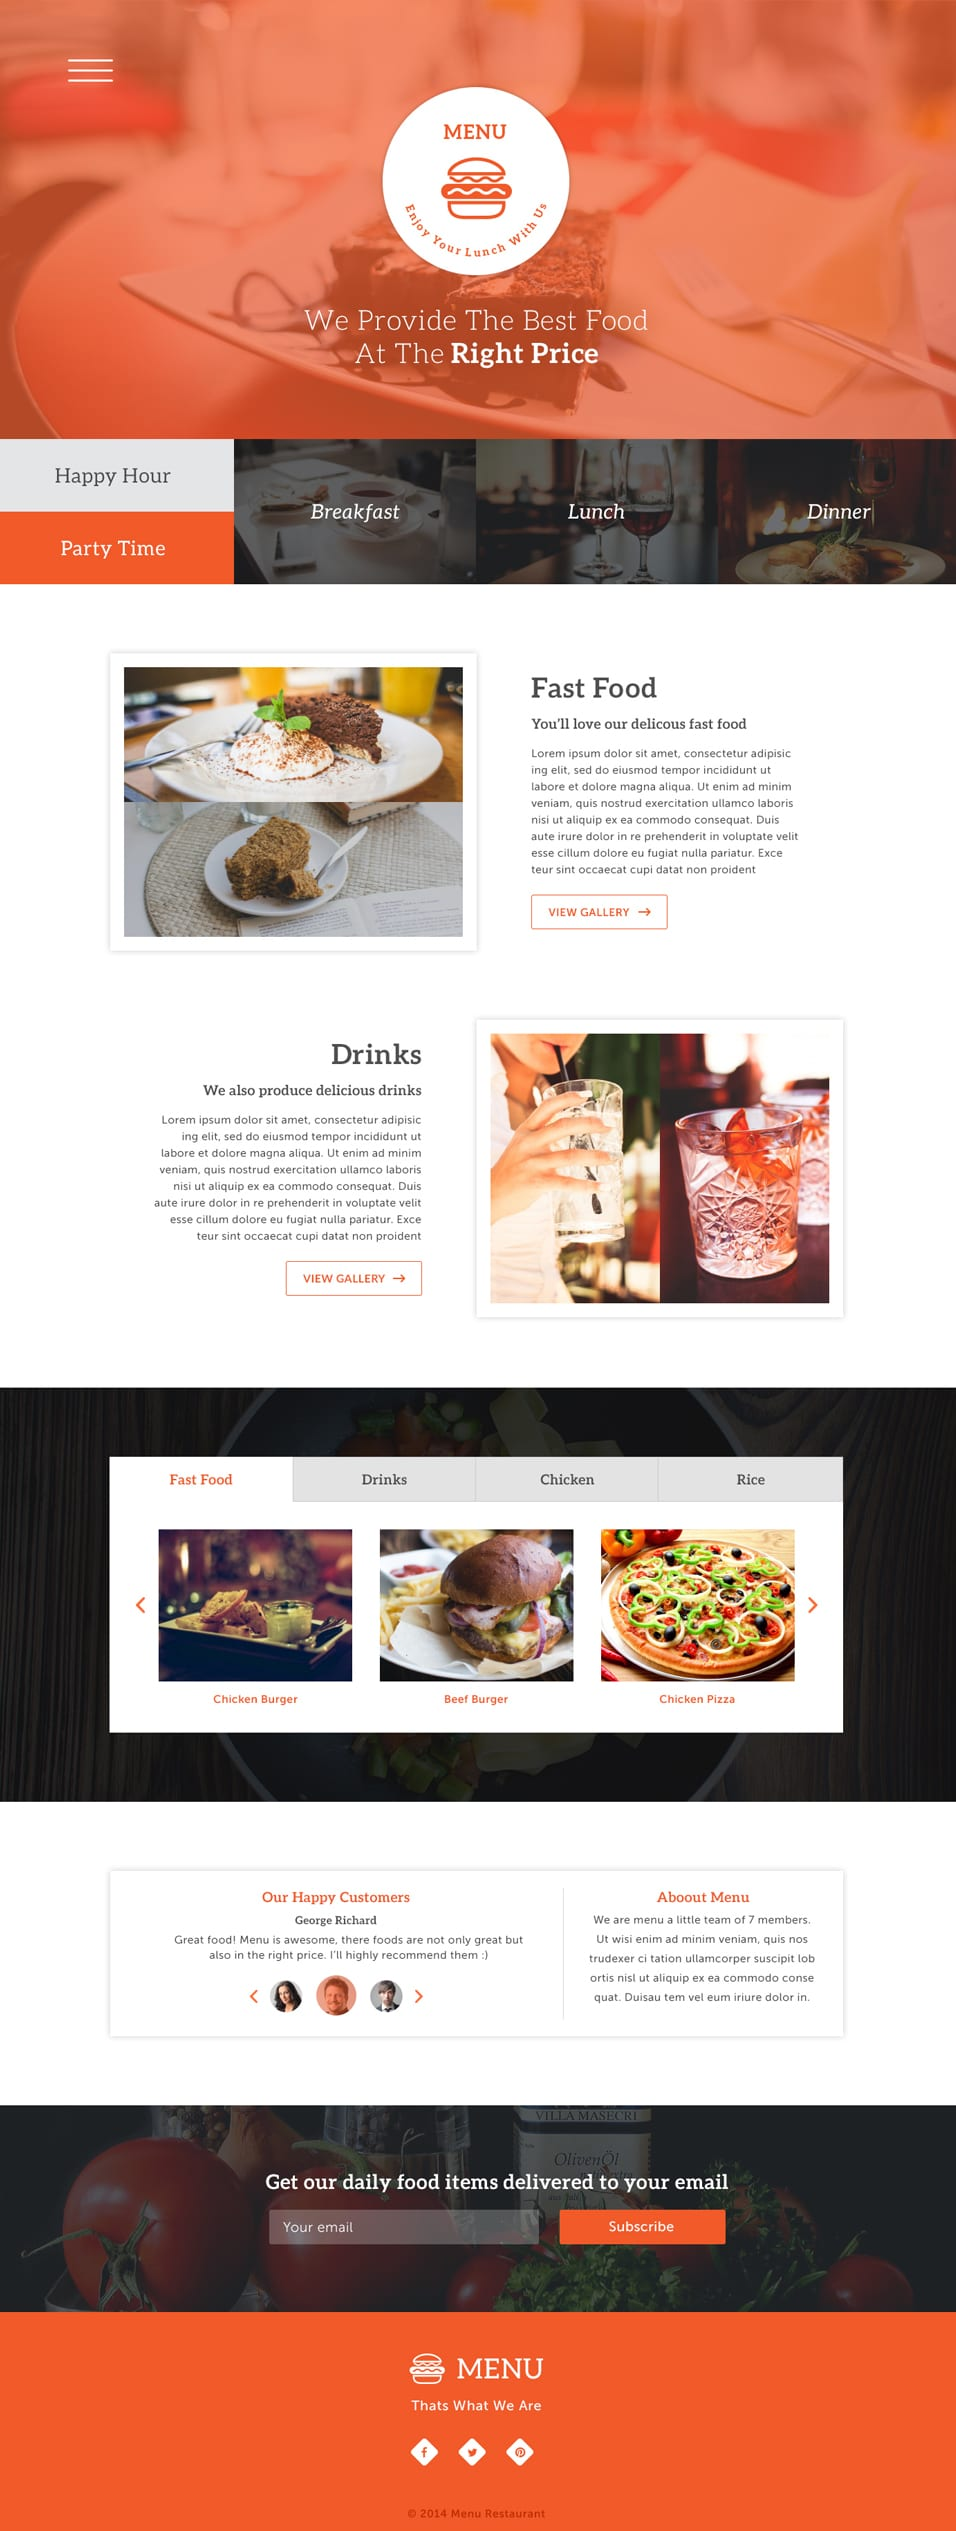 Menu One Page PSD